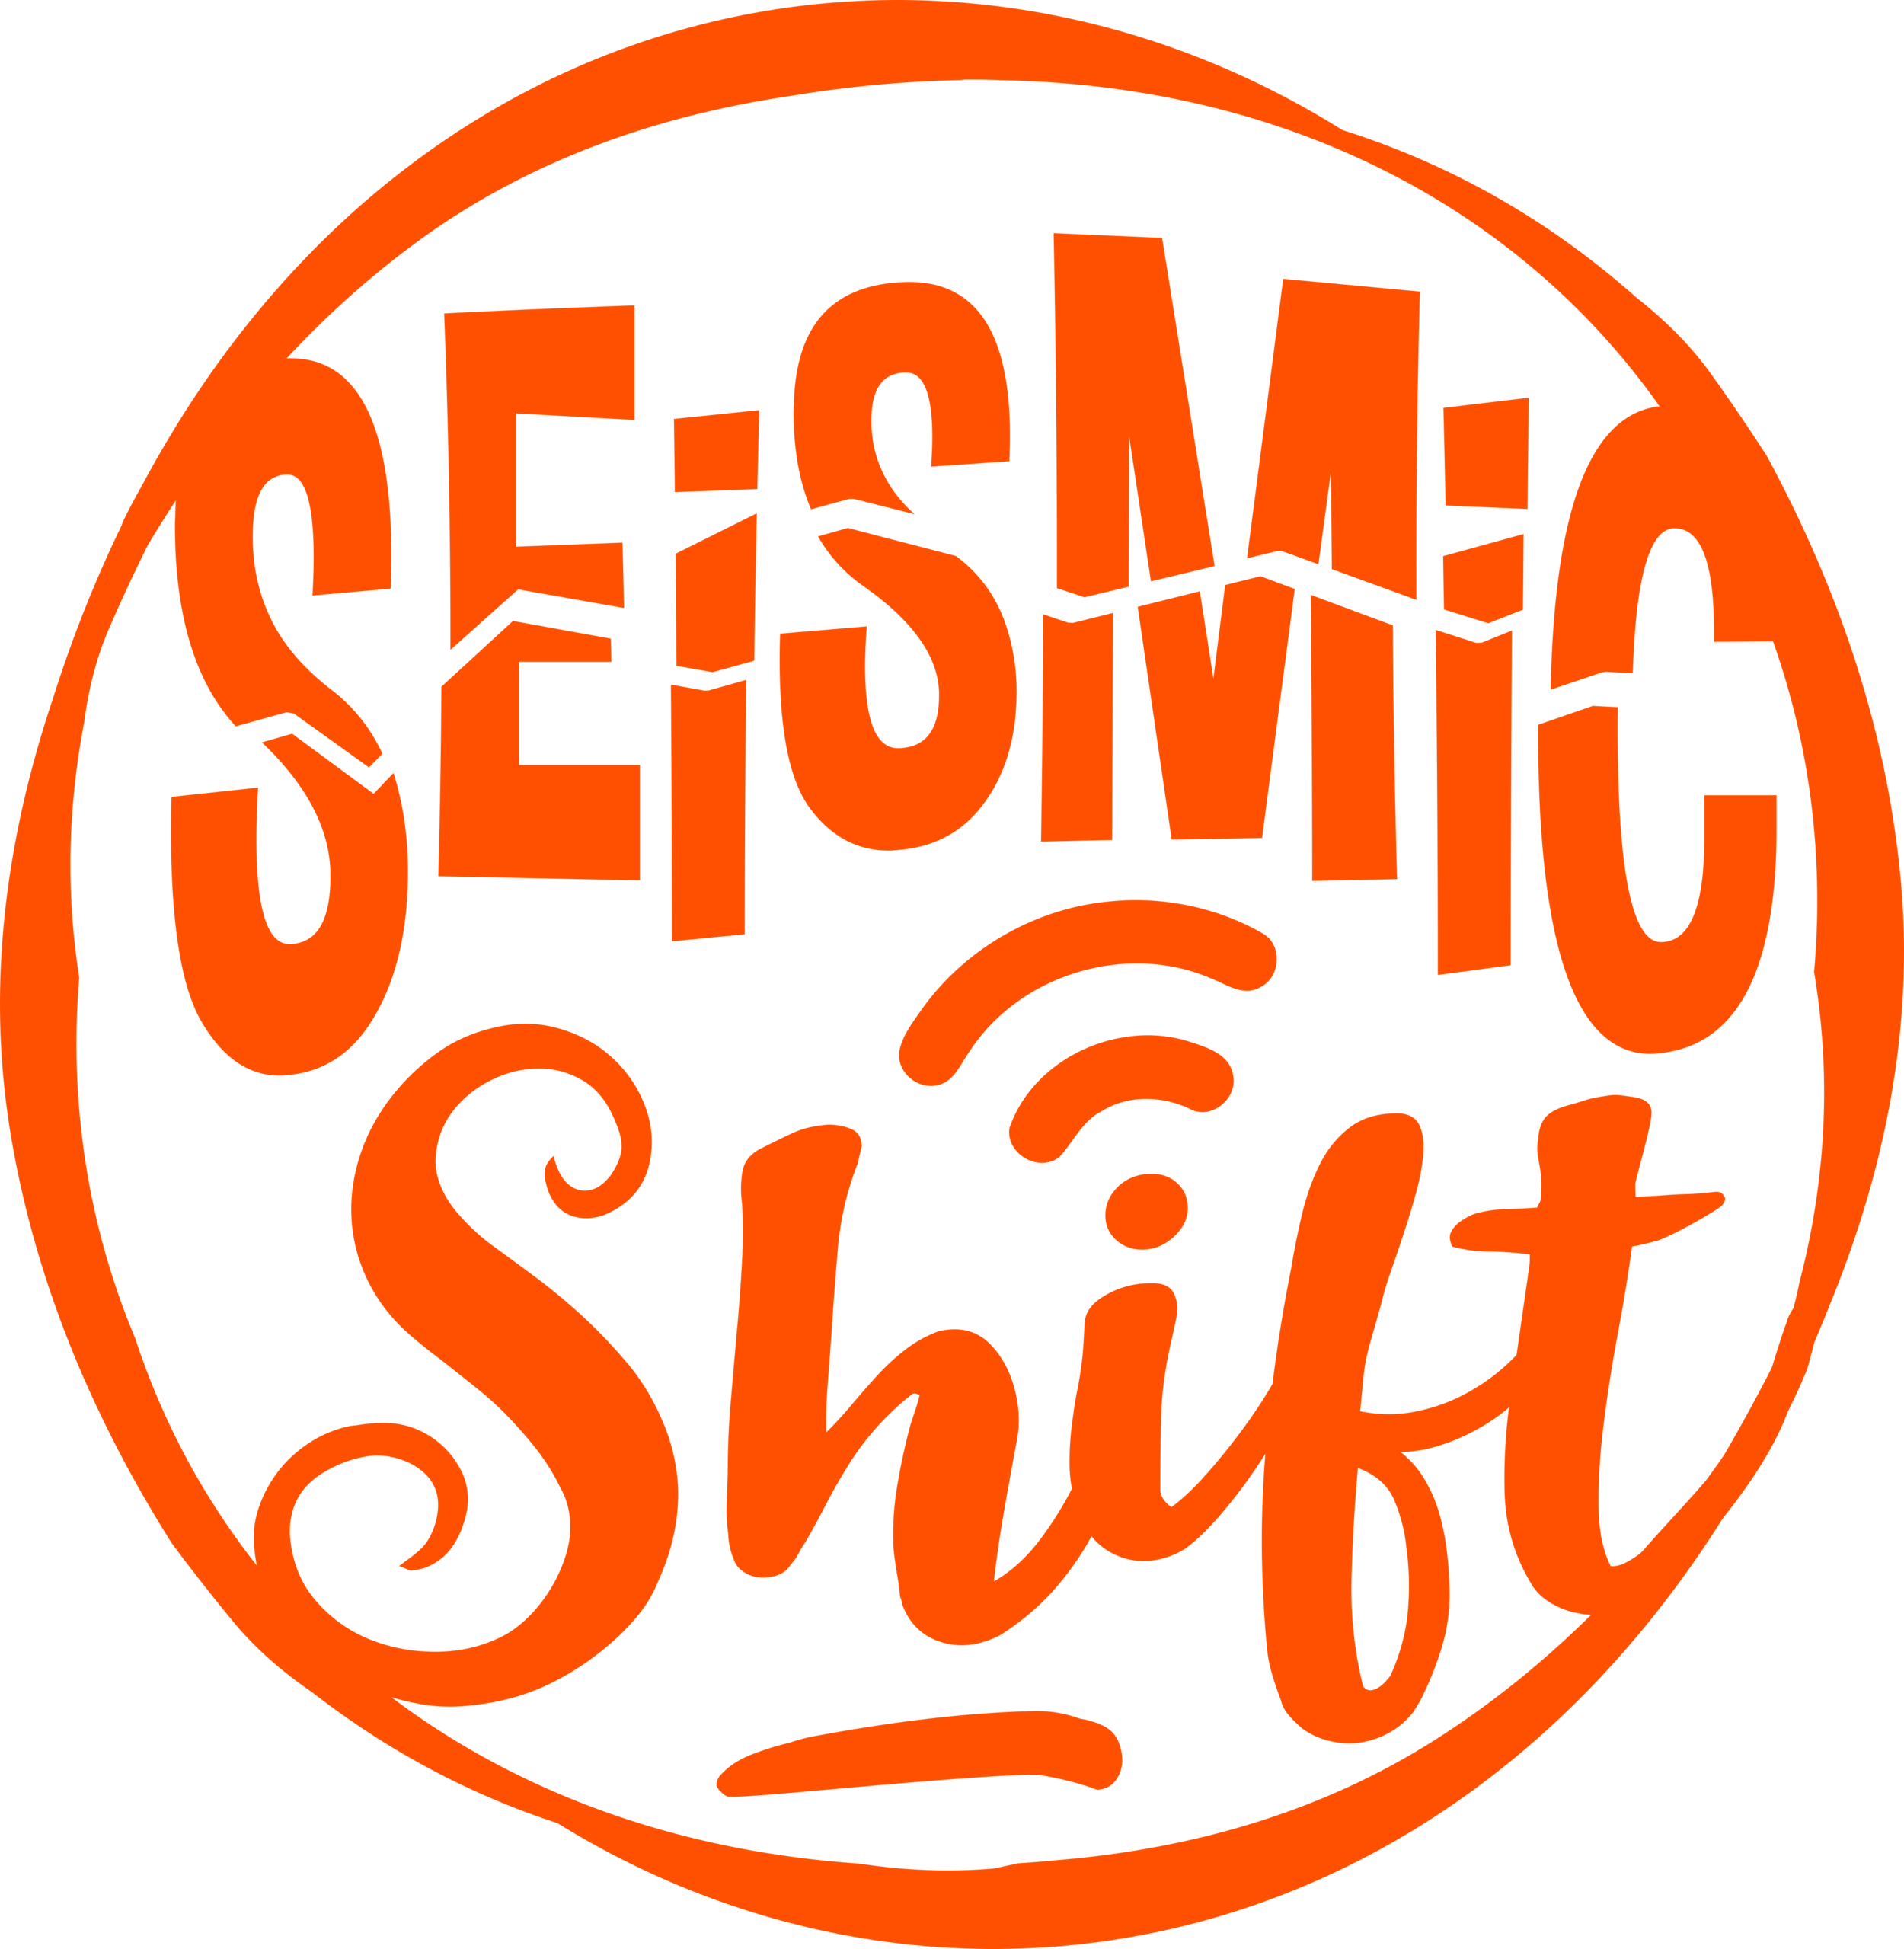 on the Seismic Shift podcast